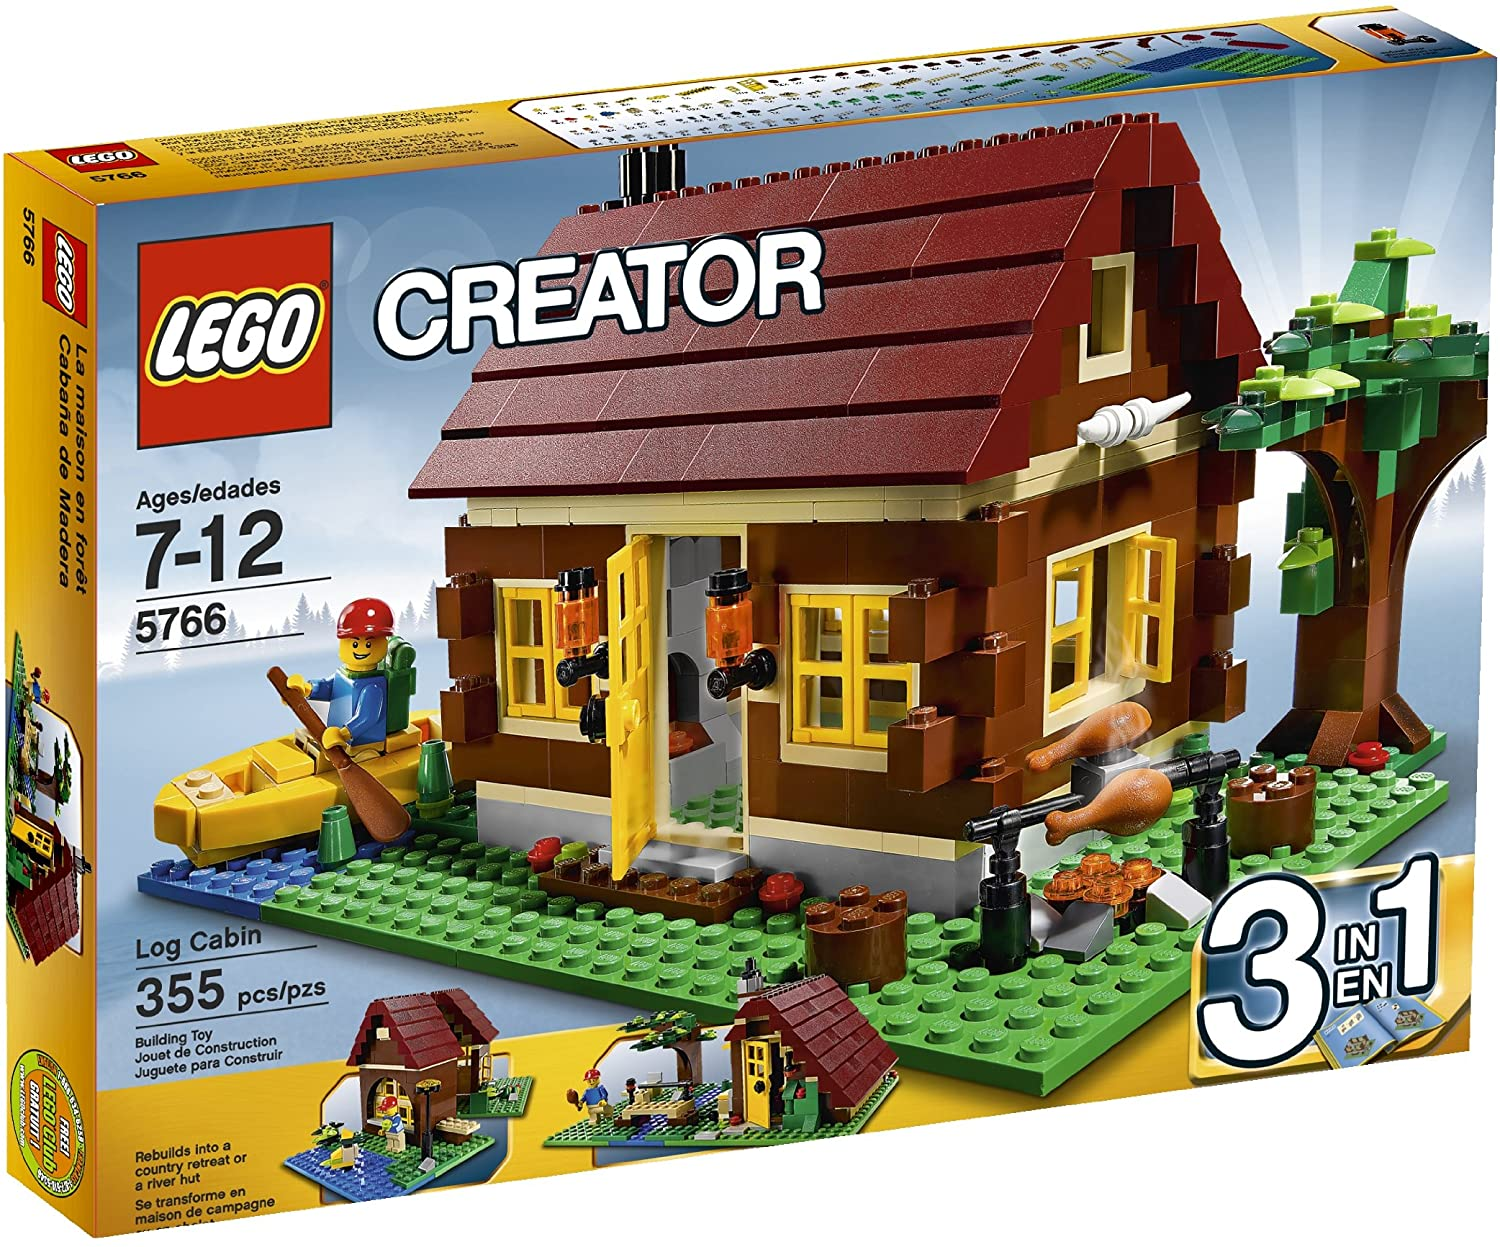 Creator Log Cabin (5766)